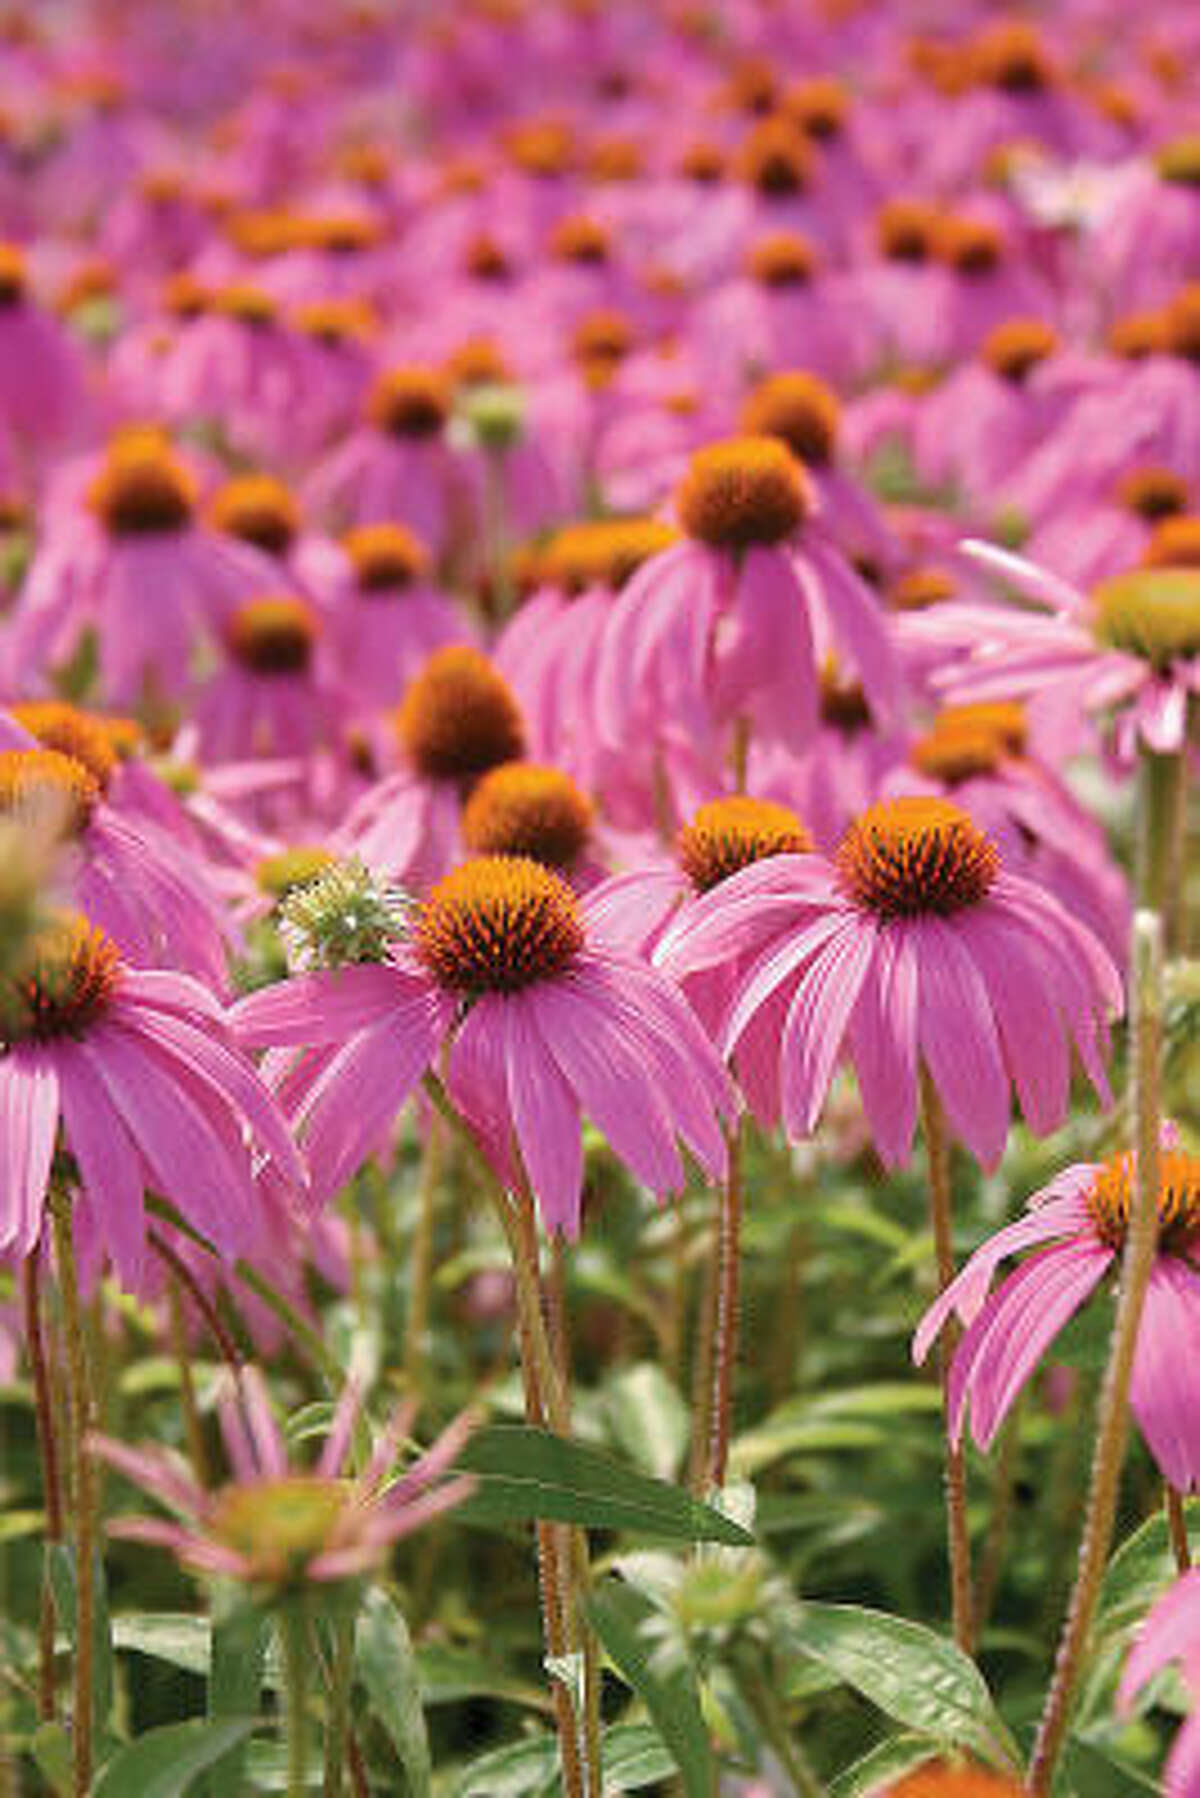 'Kim's Knee-High' Echinacea or coneflower More: Gregarious coneflowers | Submit your garden photos | Houston Plant Database | HoustonGrows.com